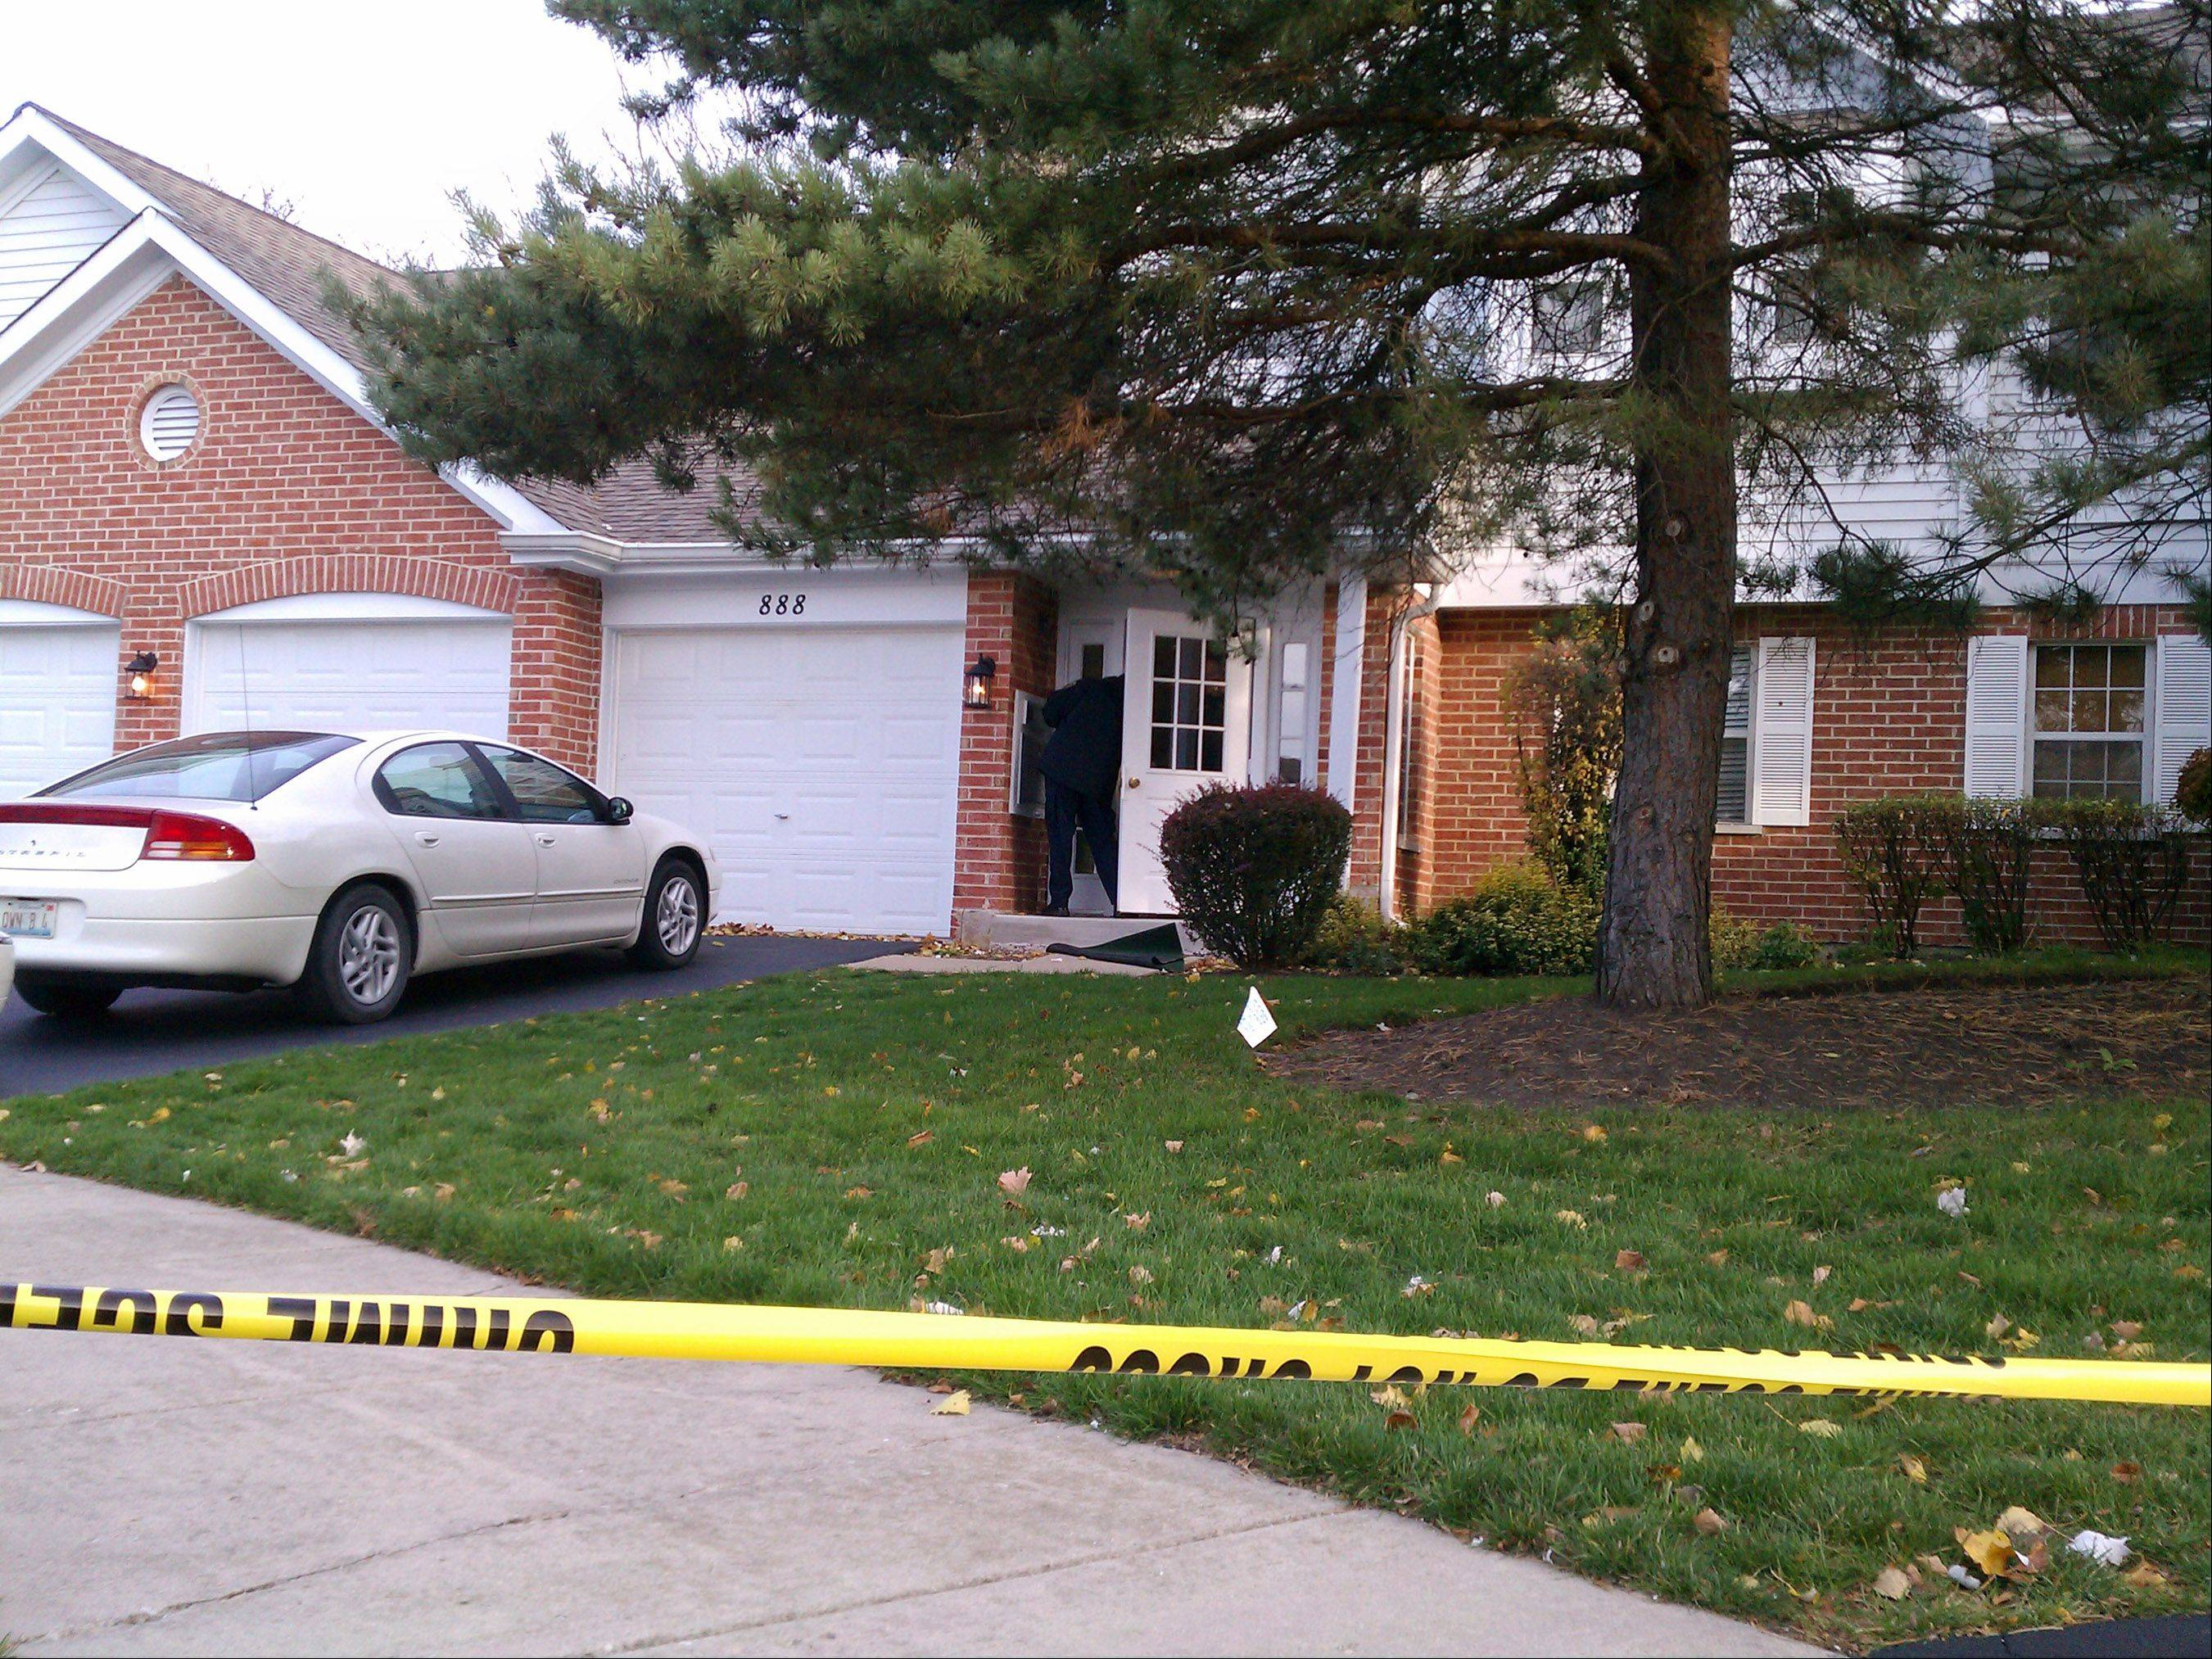 Five-year-old Olivia Dworakowski was stabbed to death at this home in Naperville. Police officers helped find the girl in August who got lost on her first day of kindergarten.